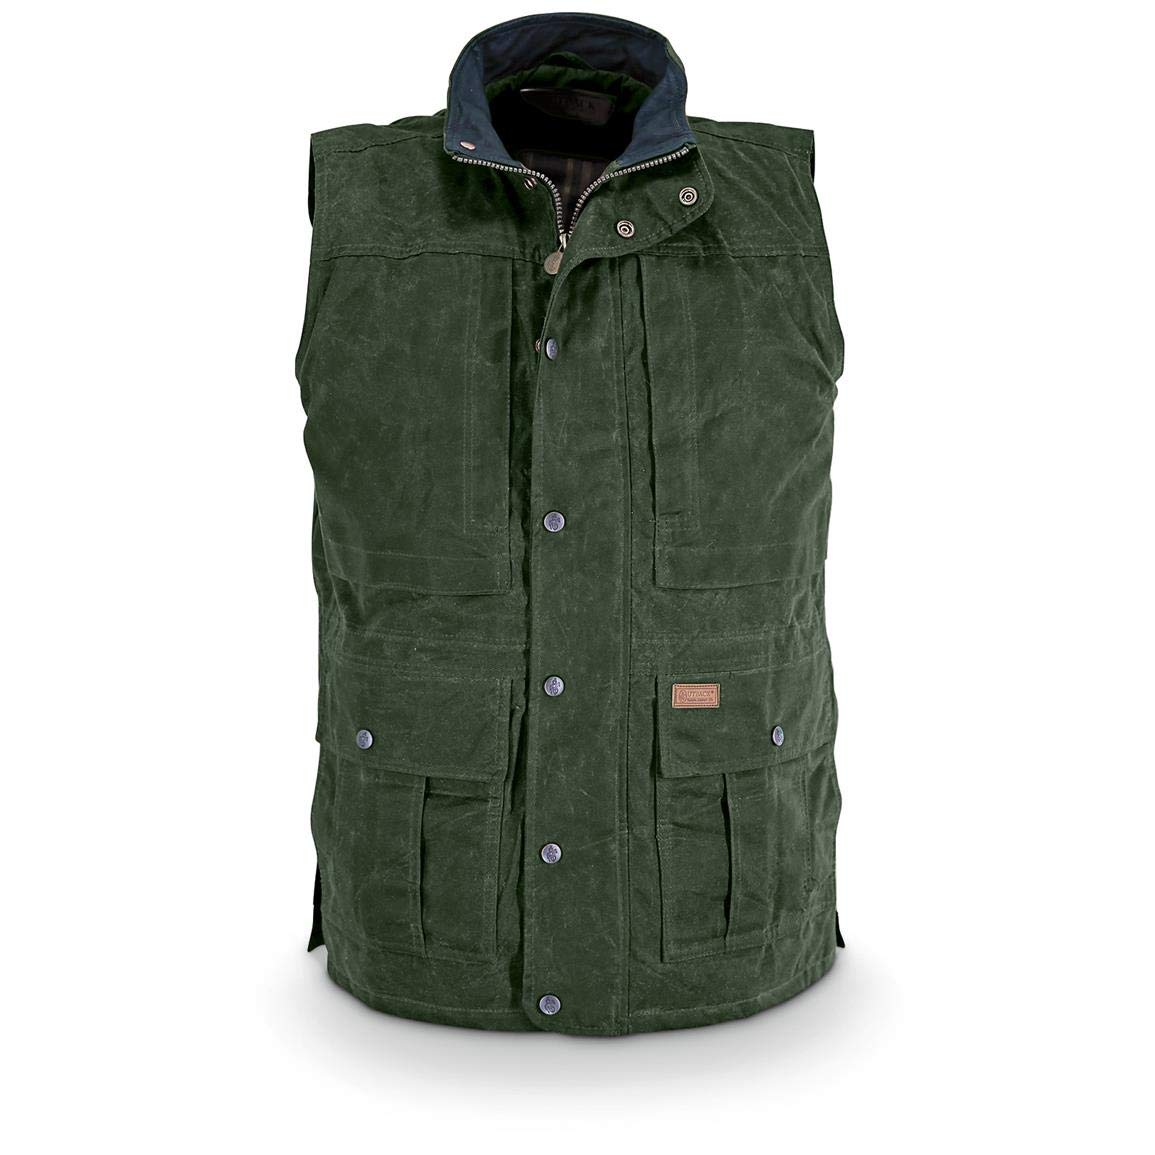 Outback Trading Company Deer Hunter Oilskin Vest, Green, XL by Outback Trading